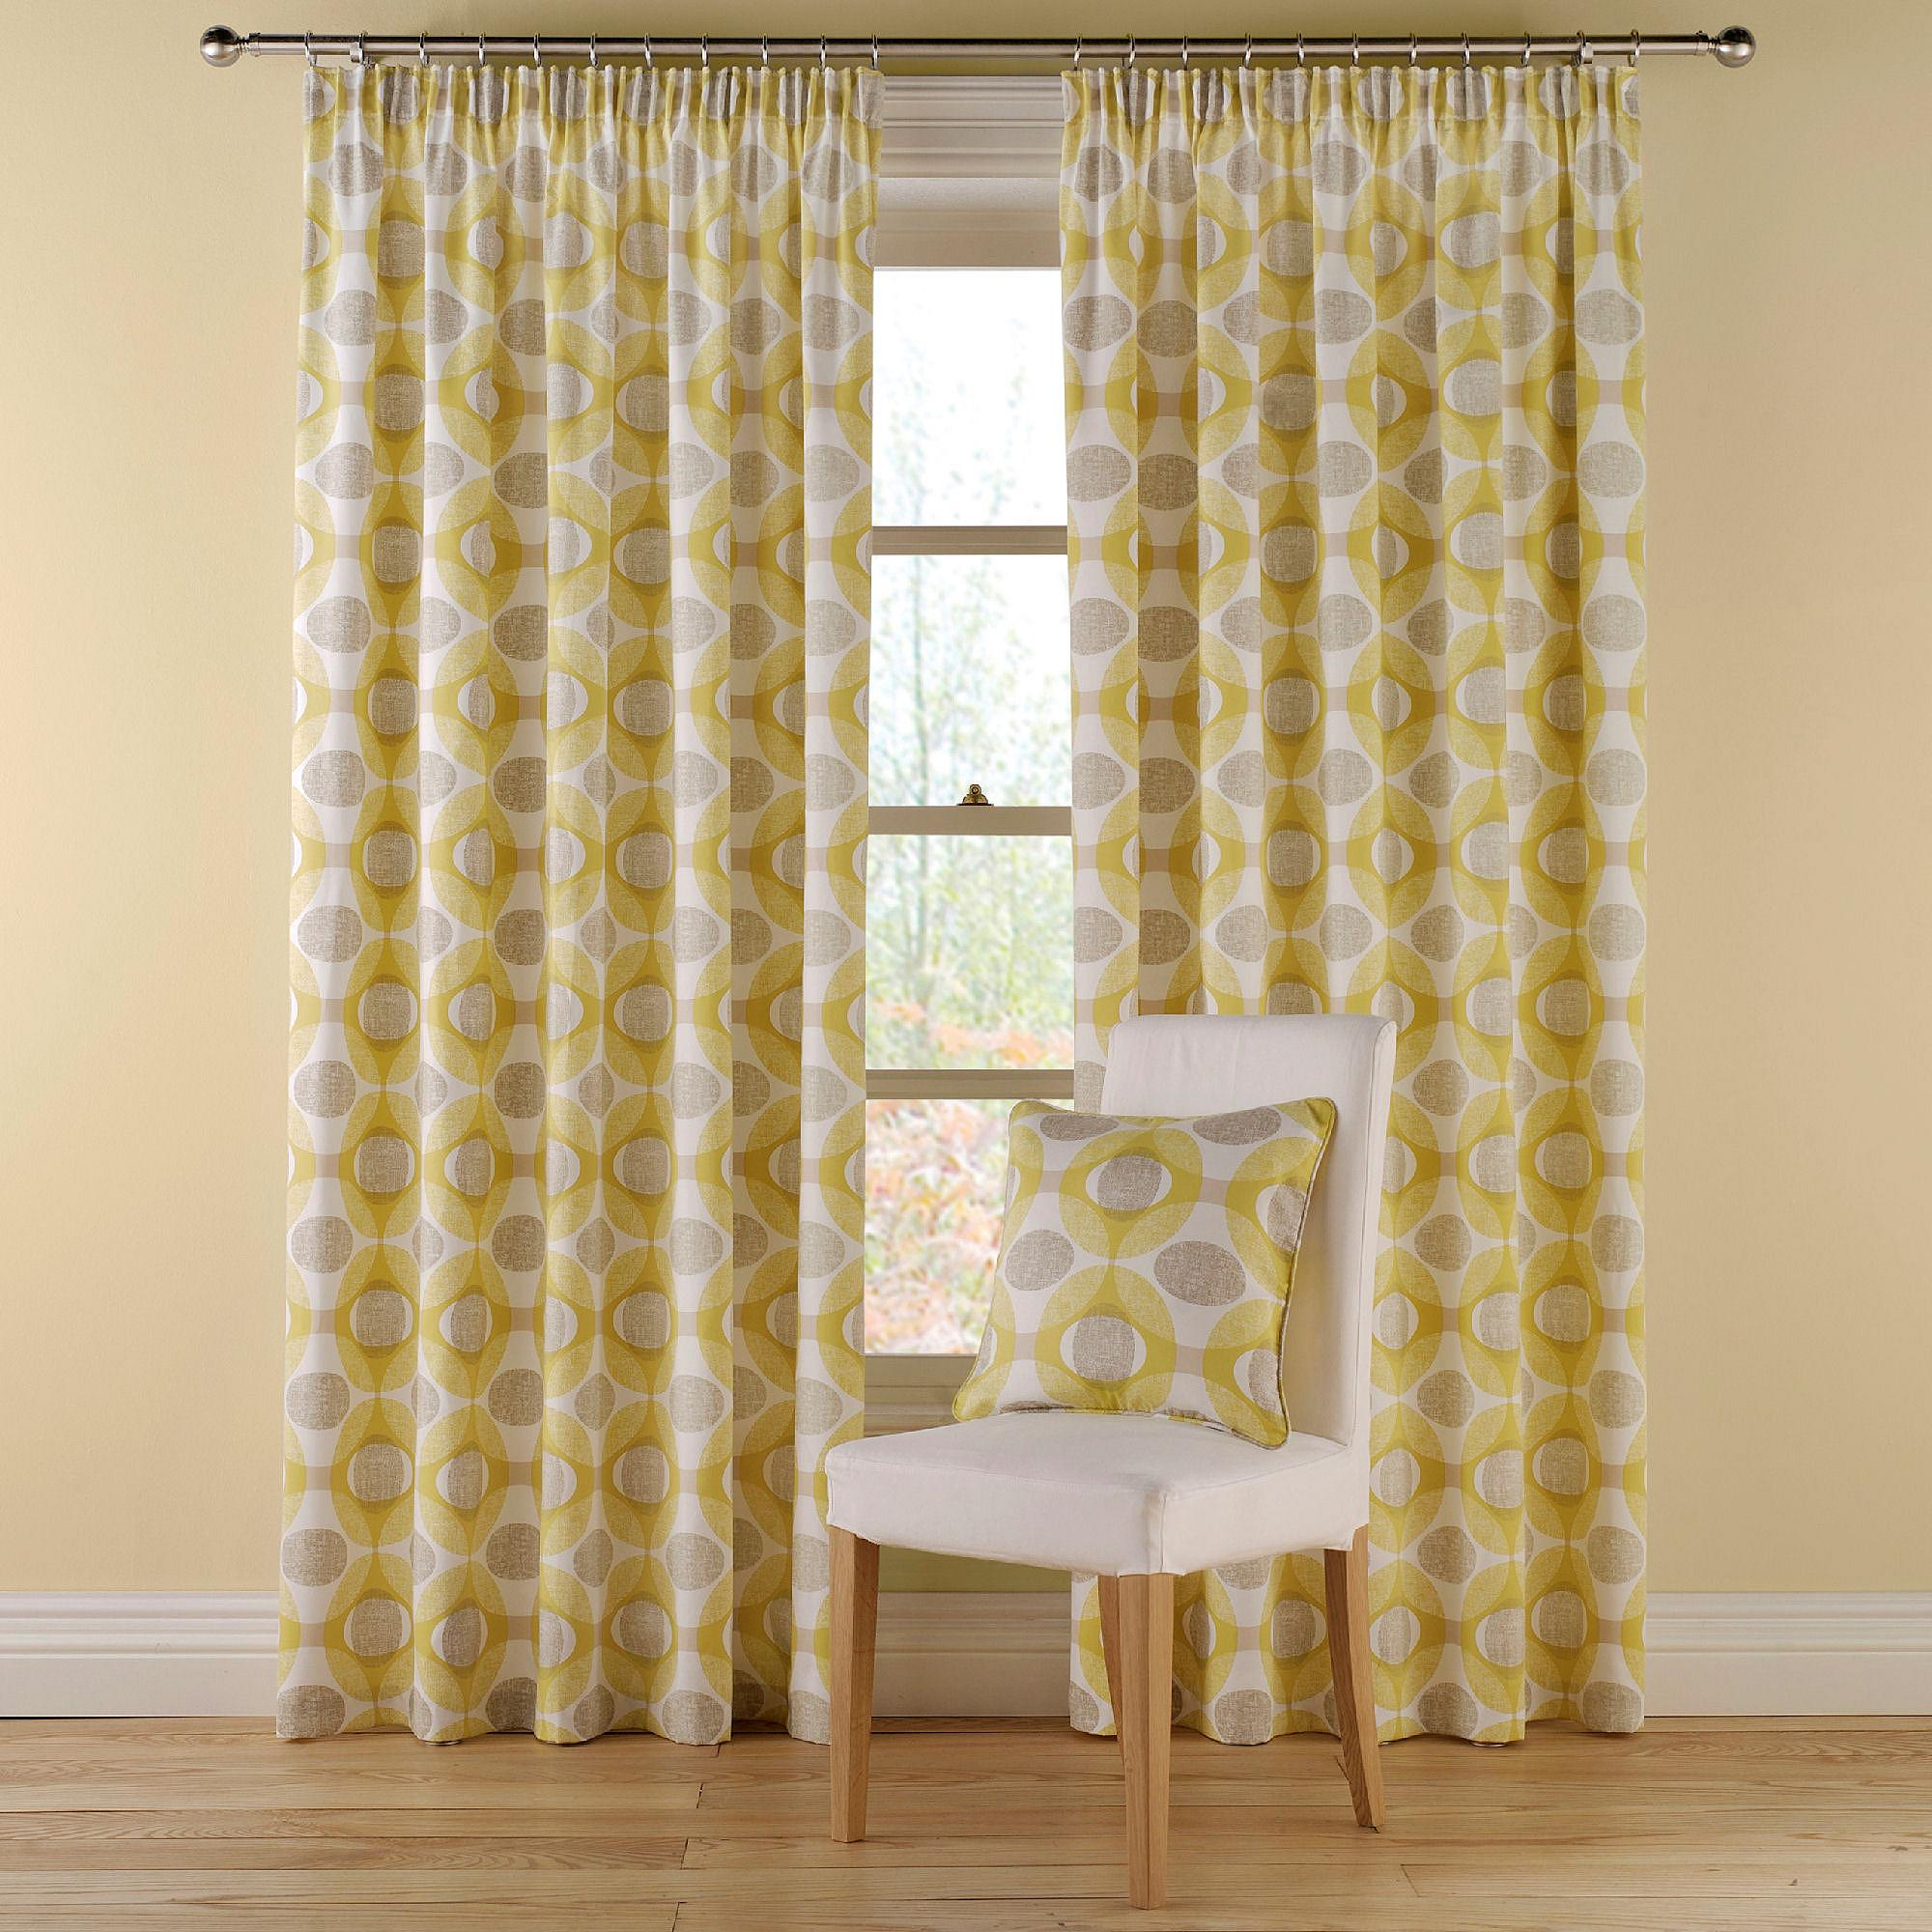 Delightful Pair Of Montgomery Olympic Pencil Pleat Curtains Home And